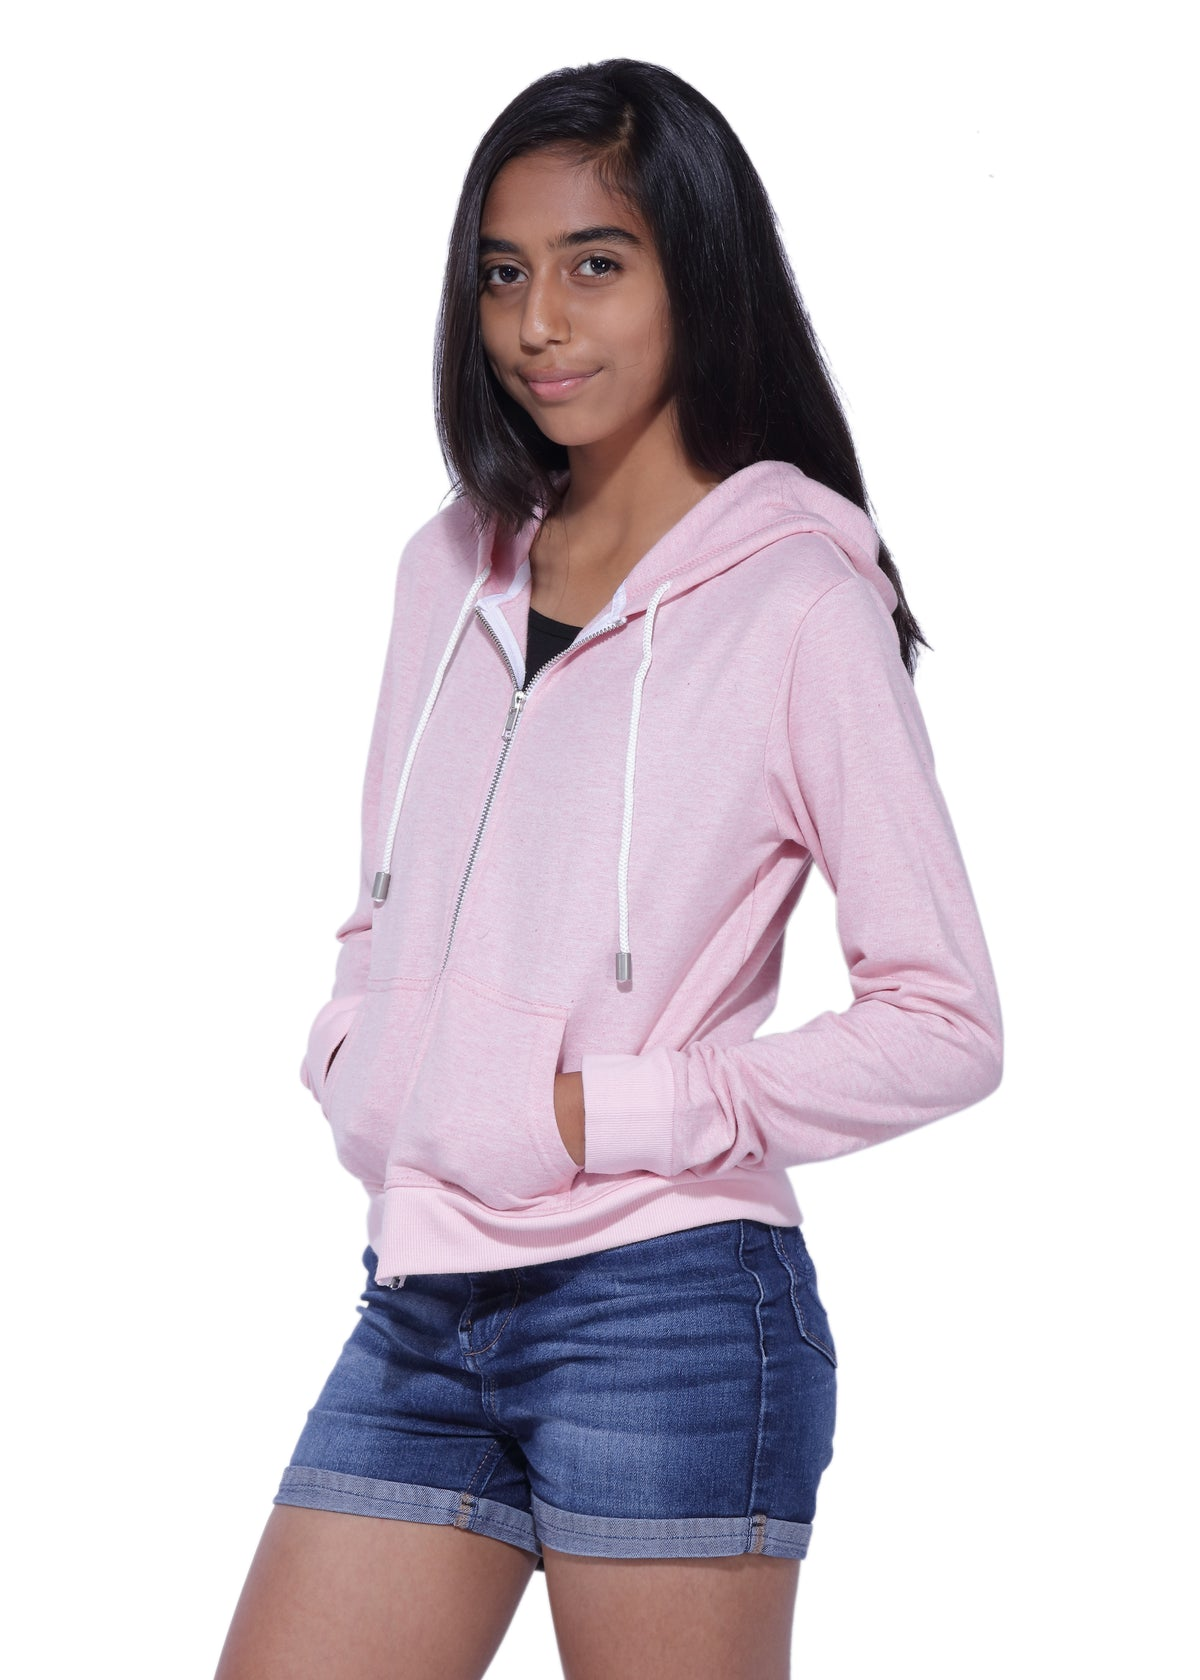 Hoodie for girls and women